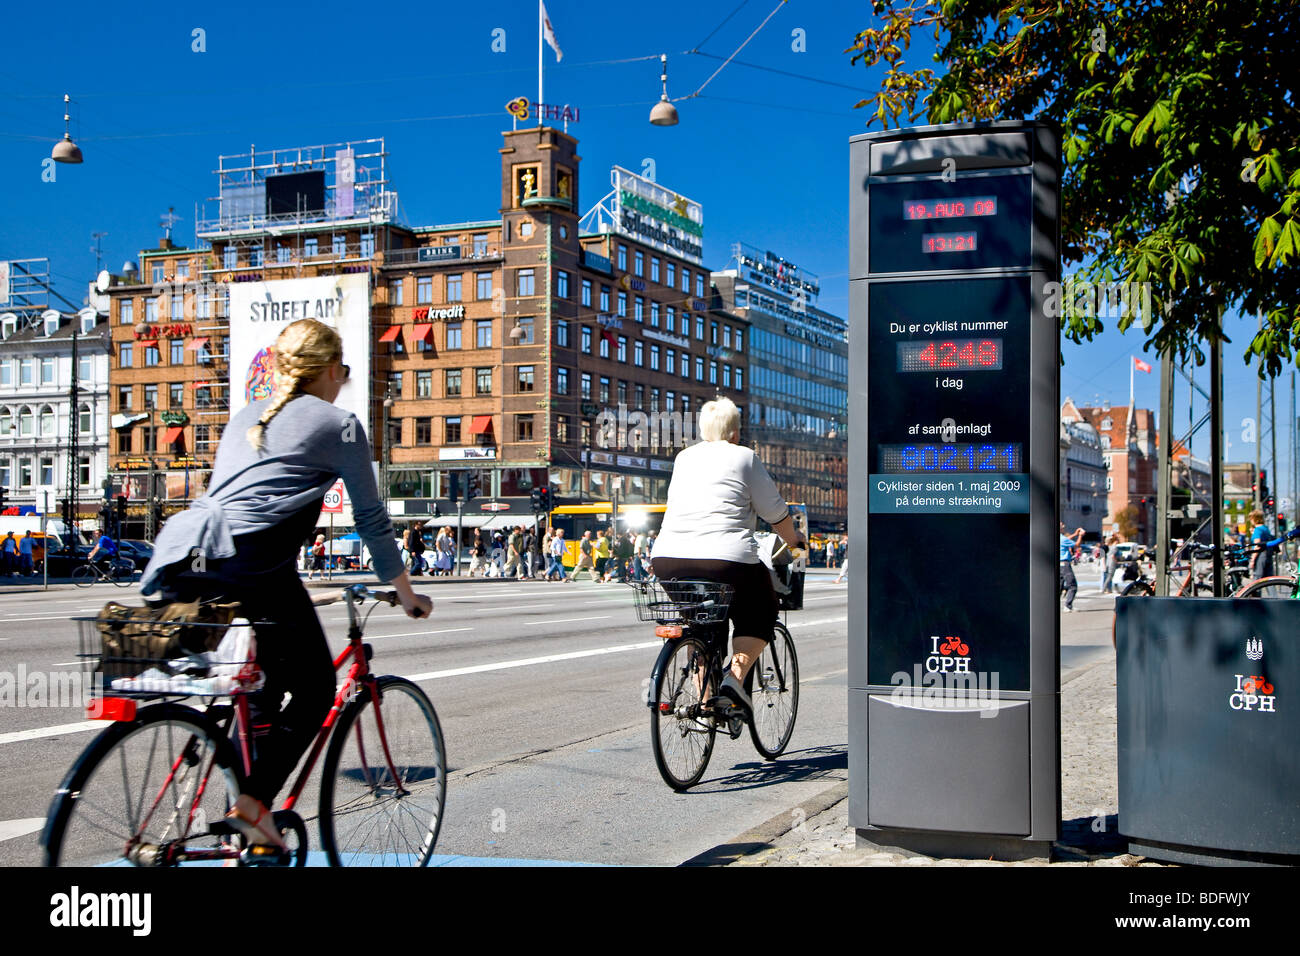 Electronic bicycle counter at the city hall square in Copenhagen - Stock Image